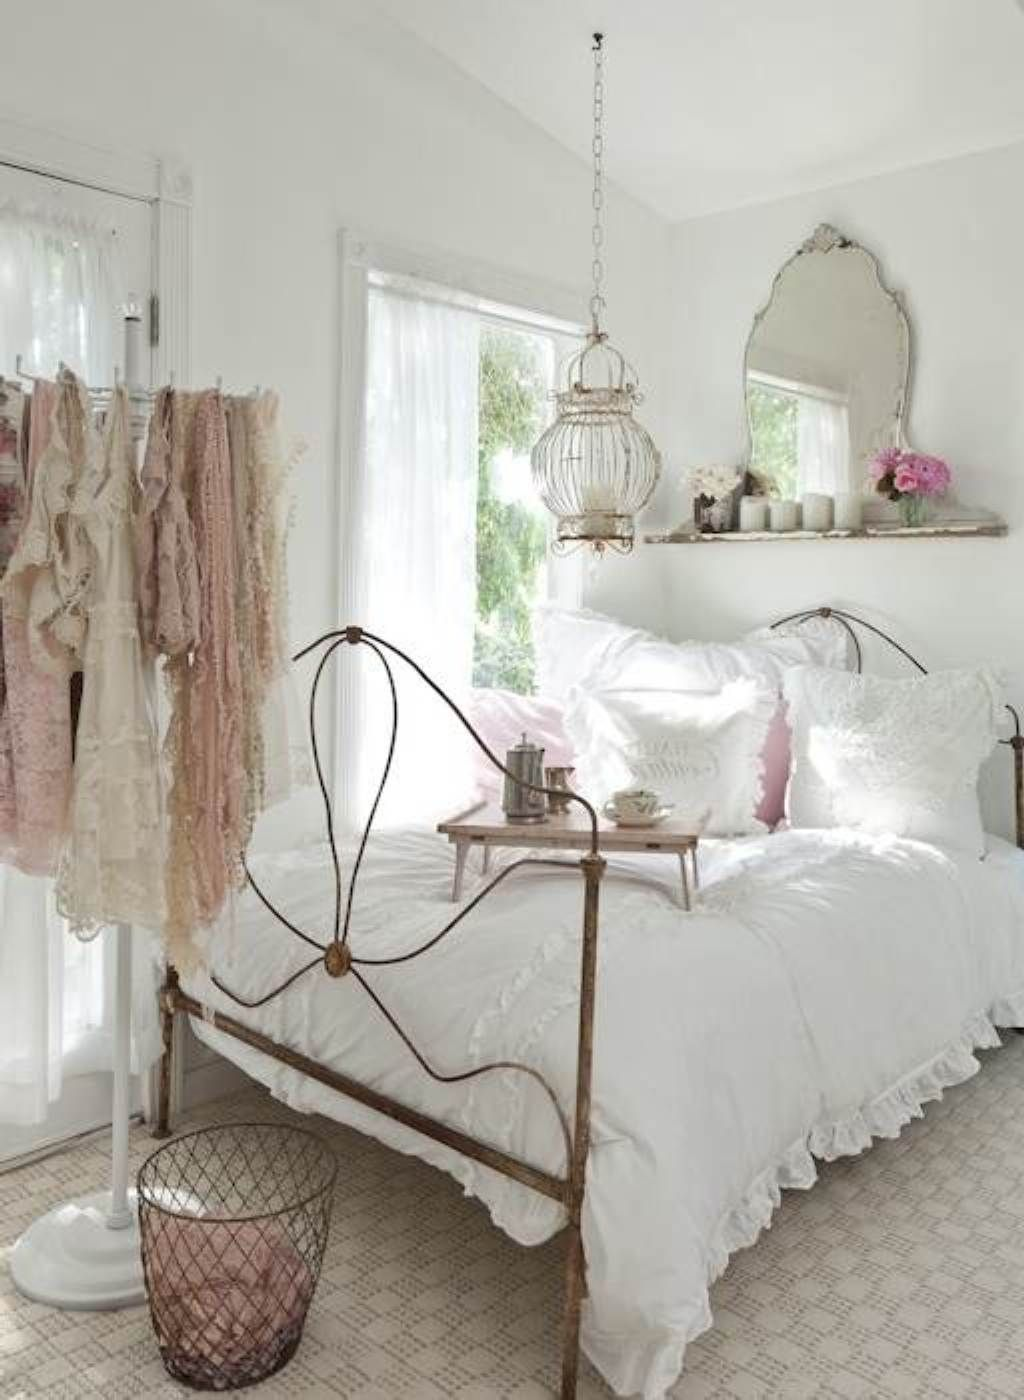 White bedroom ideas for women - Lovely Bedroom Ideas For Young Women Beautiful Shabby Chic White Young Women Bedroom With Classic Hanging Lamp And Vintage Mirror Also Min